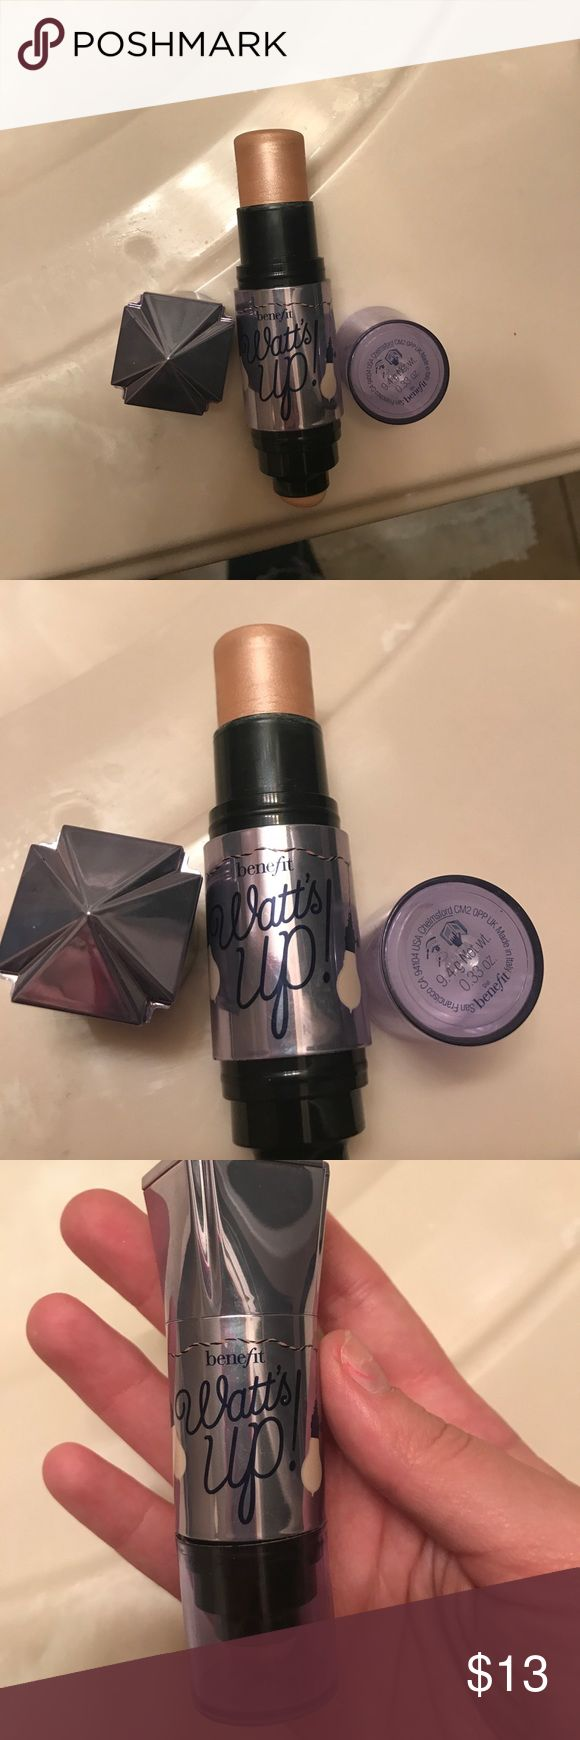 Benefit Watts Up Highlighter Great for highlighting. Only used a few times! Lots of product left! Makeup Luminizer